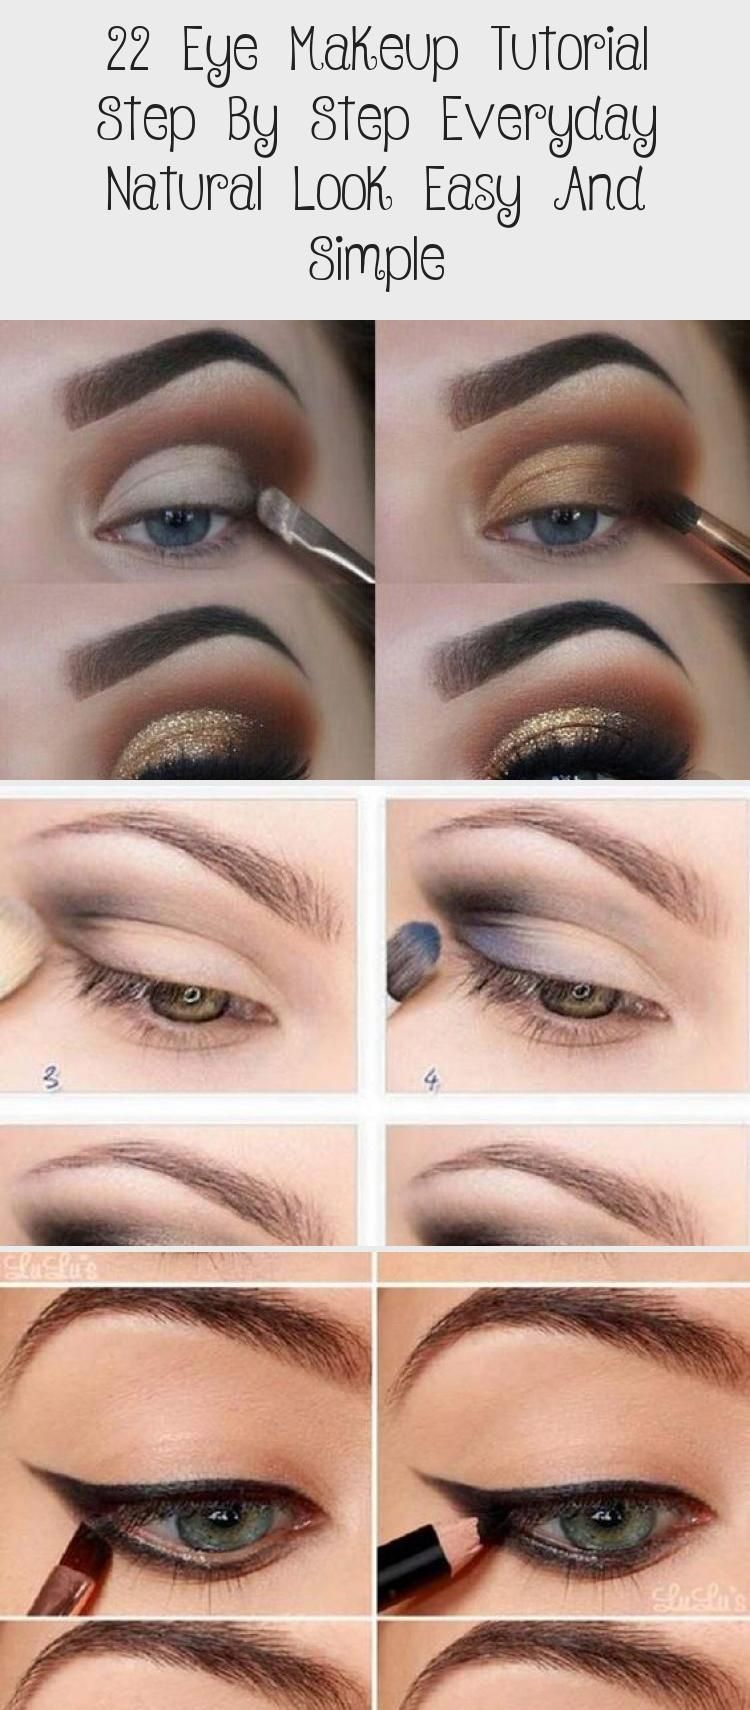 22 Eye Makeup Tutorial Step By Step Everyday Natural Look Easy And